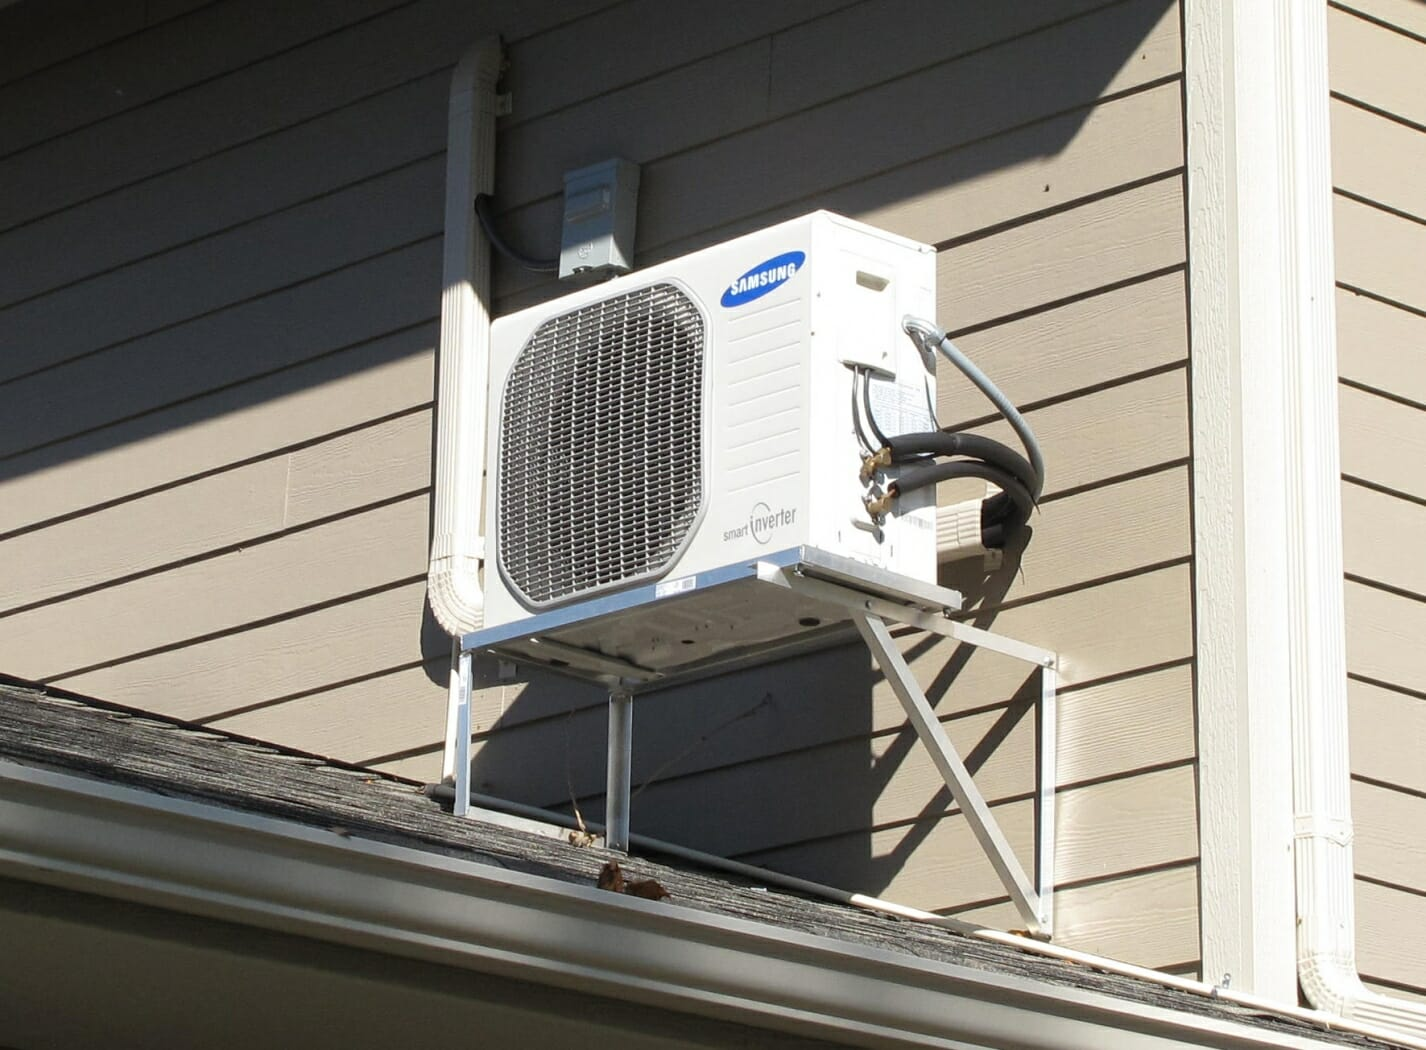 Average cost of new furnace and ac for home - Average Cost Of New Furnace And Ac For Home 39